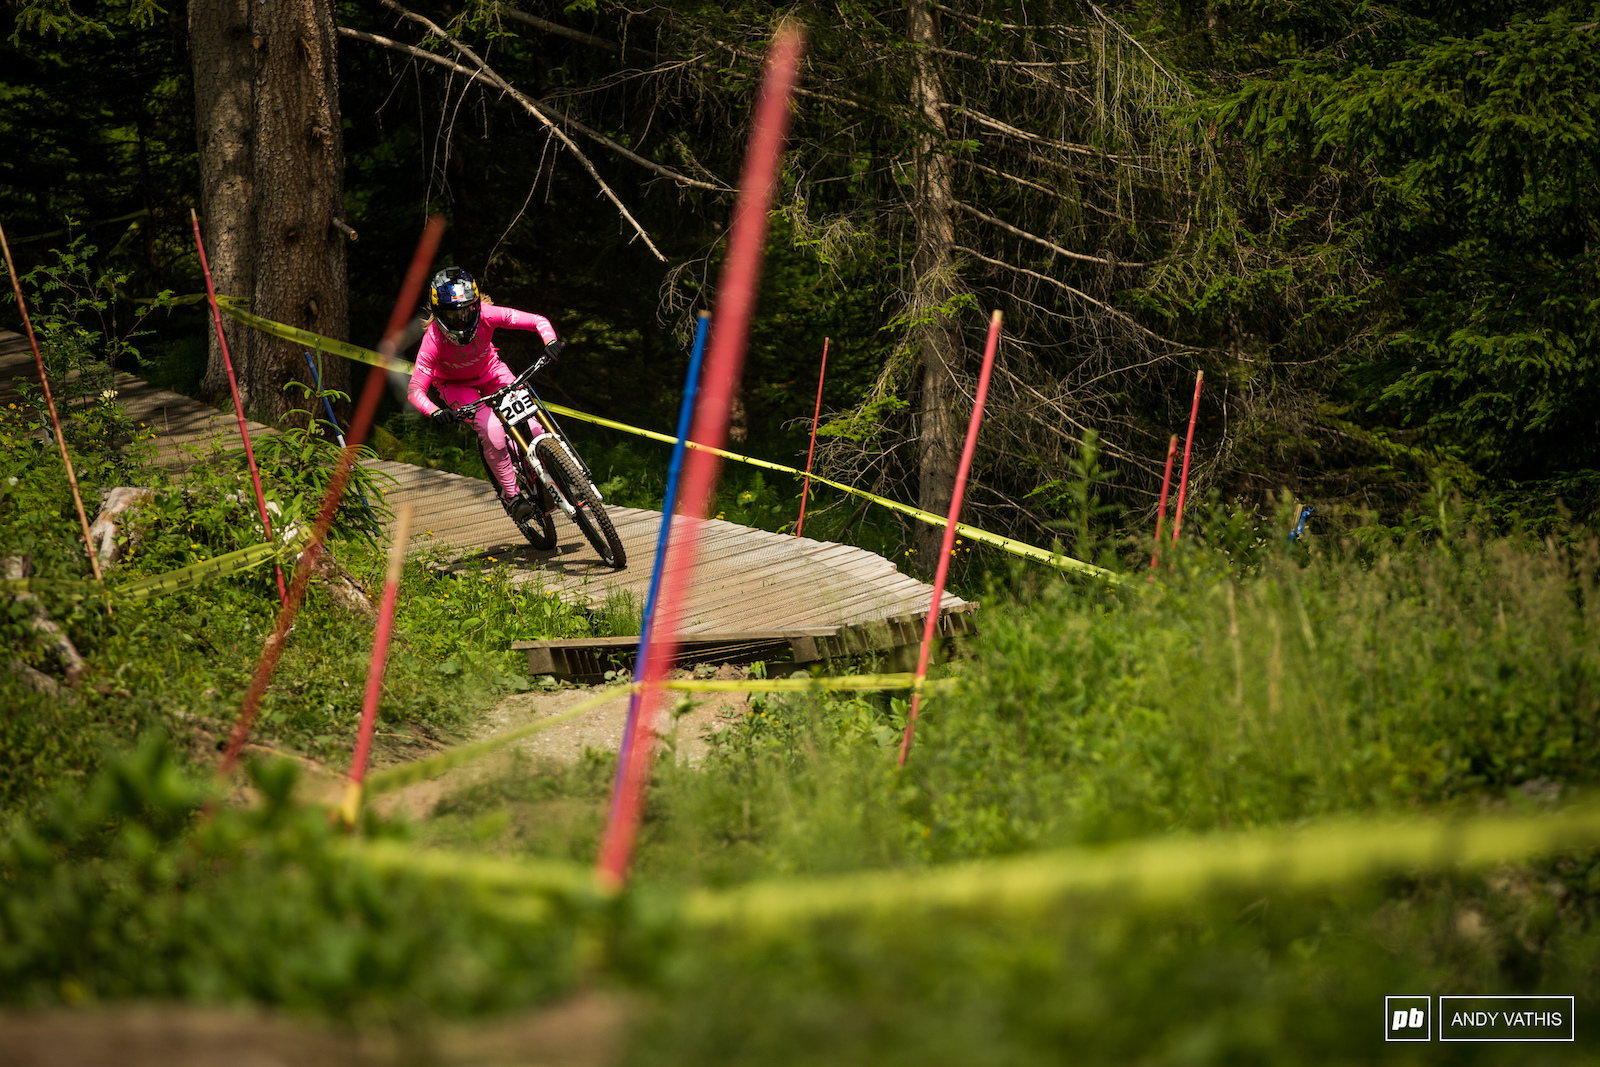 Tahnee Seagrave is back on her groove and into third.